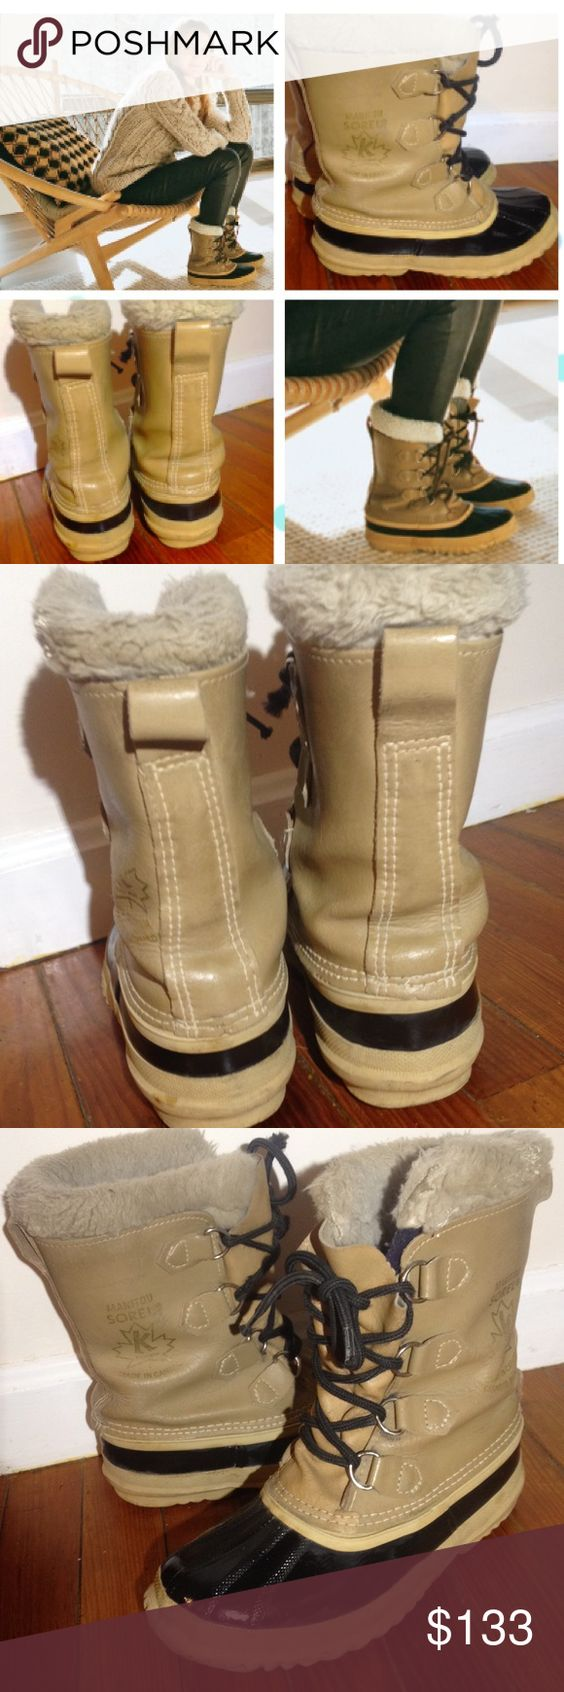 "❤️🎉 ❤️❤️❤️Sorel Insulated Duck Boot size 8.5 ❤️🎉😘 GORGEOUS GREAT CONDITION TAN AND BLACK Sorel Canada 8"" Duck Boot women's size 8.5 Waterproof, insulated! Perfect for fall and winter weather ! Super super nice boots lace up front super comfortable too Sorel Shoes Winter & Rain Boots"